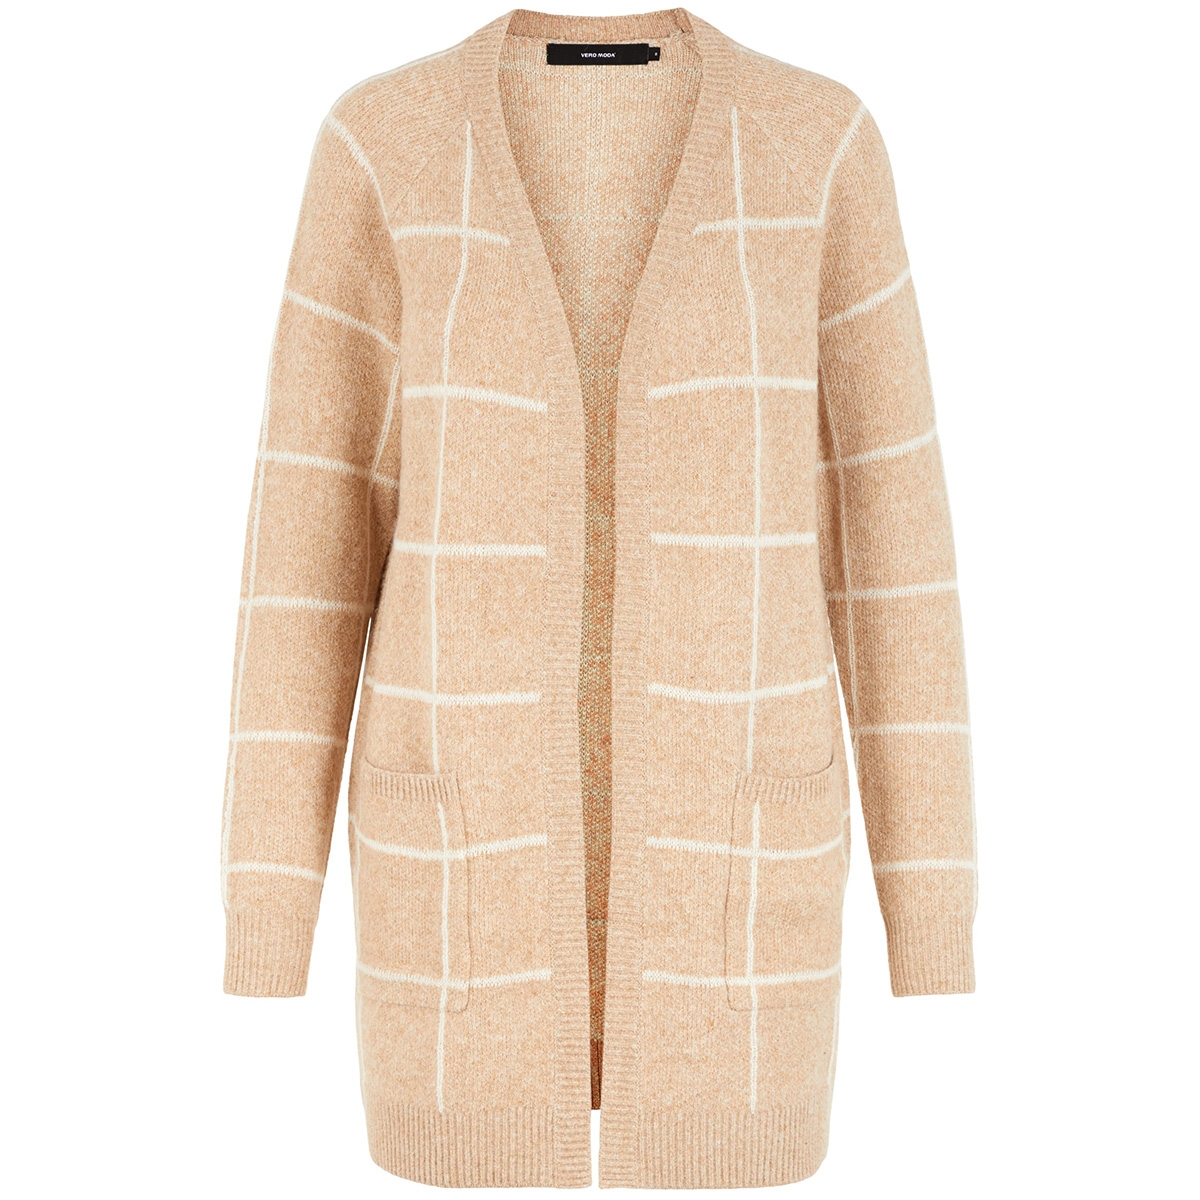 vmdoffy jacquard ls check cardigan 10215810 vero moda vest tobacco brown/birch